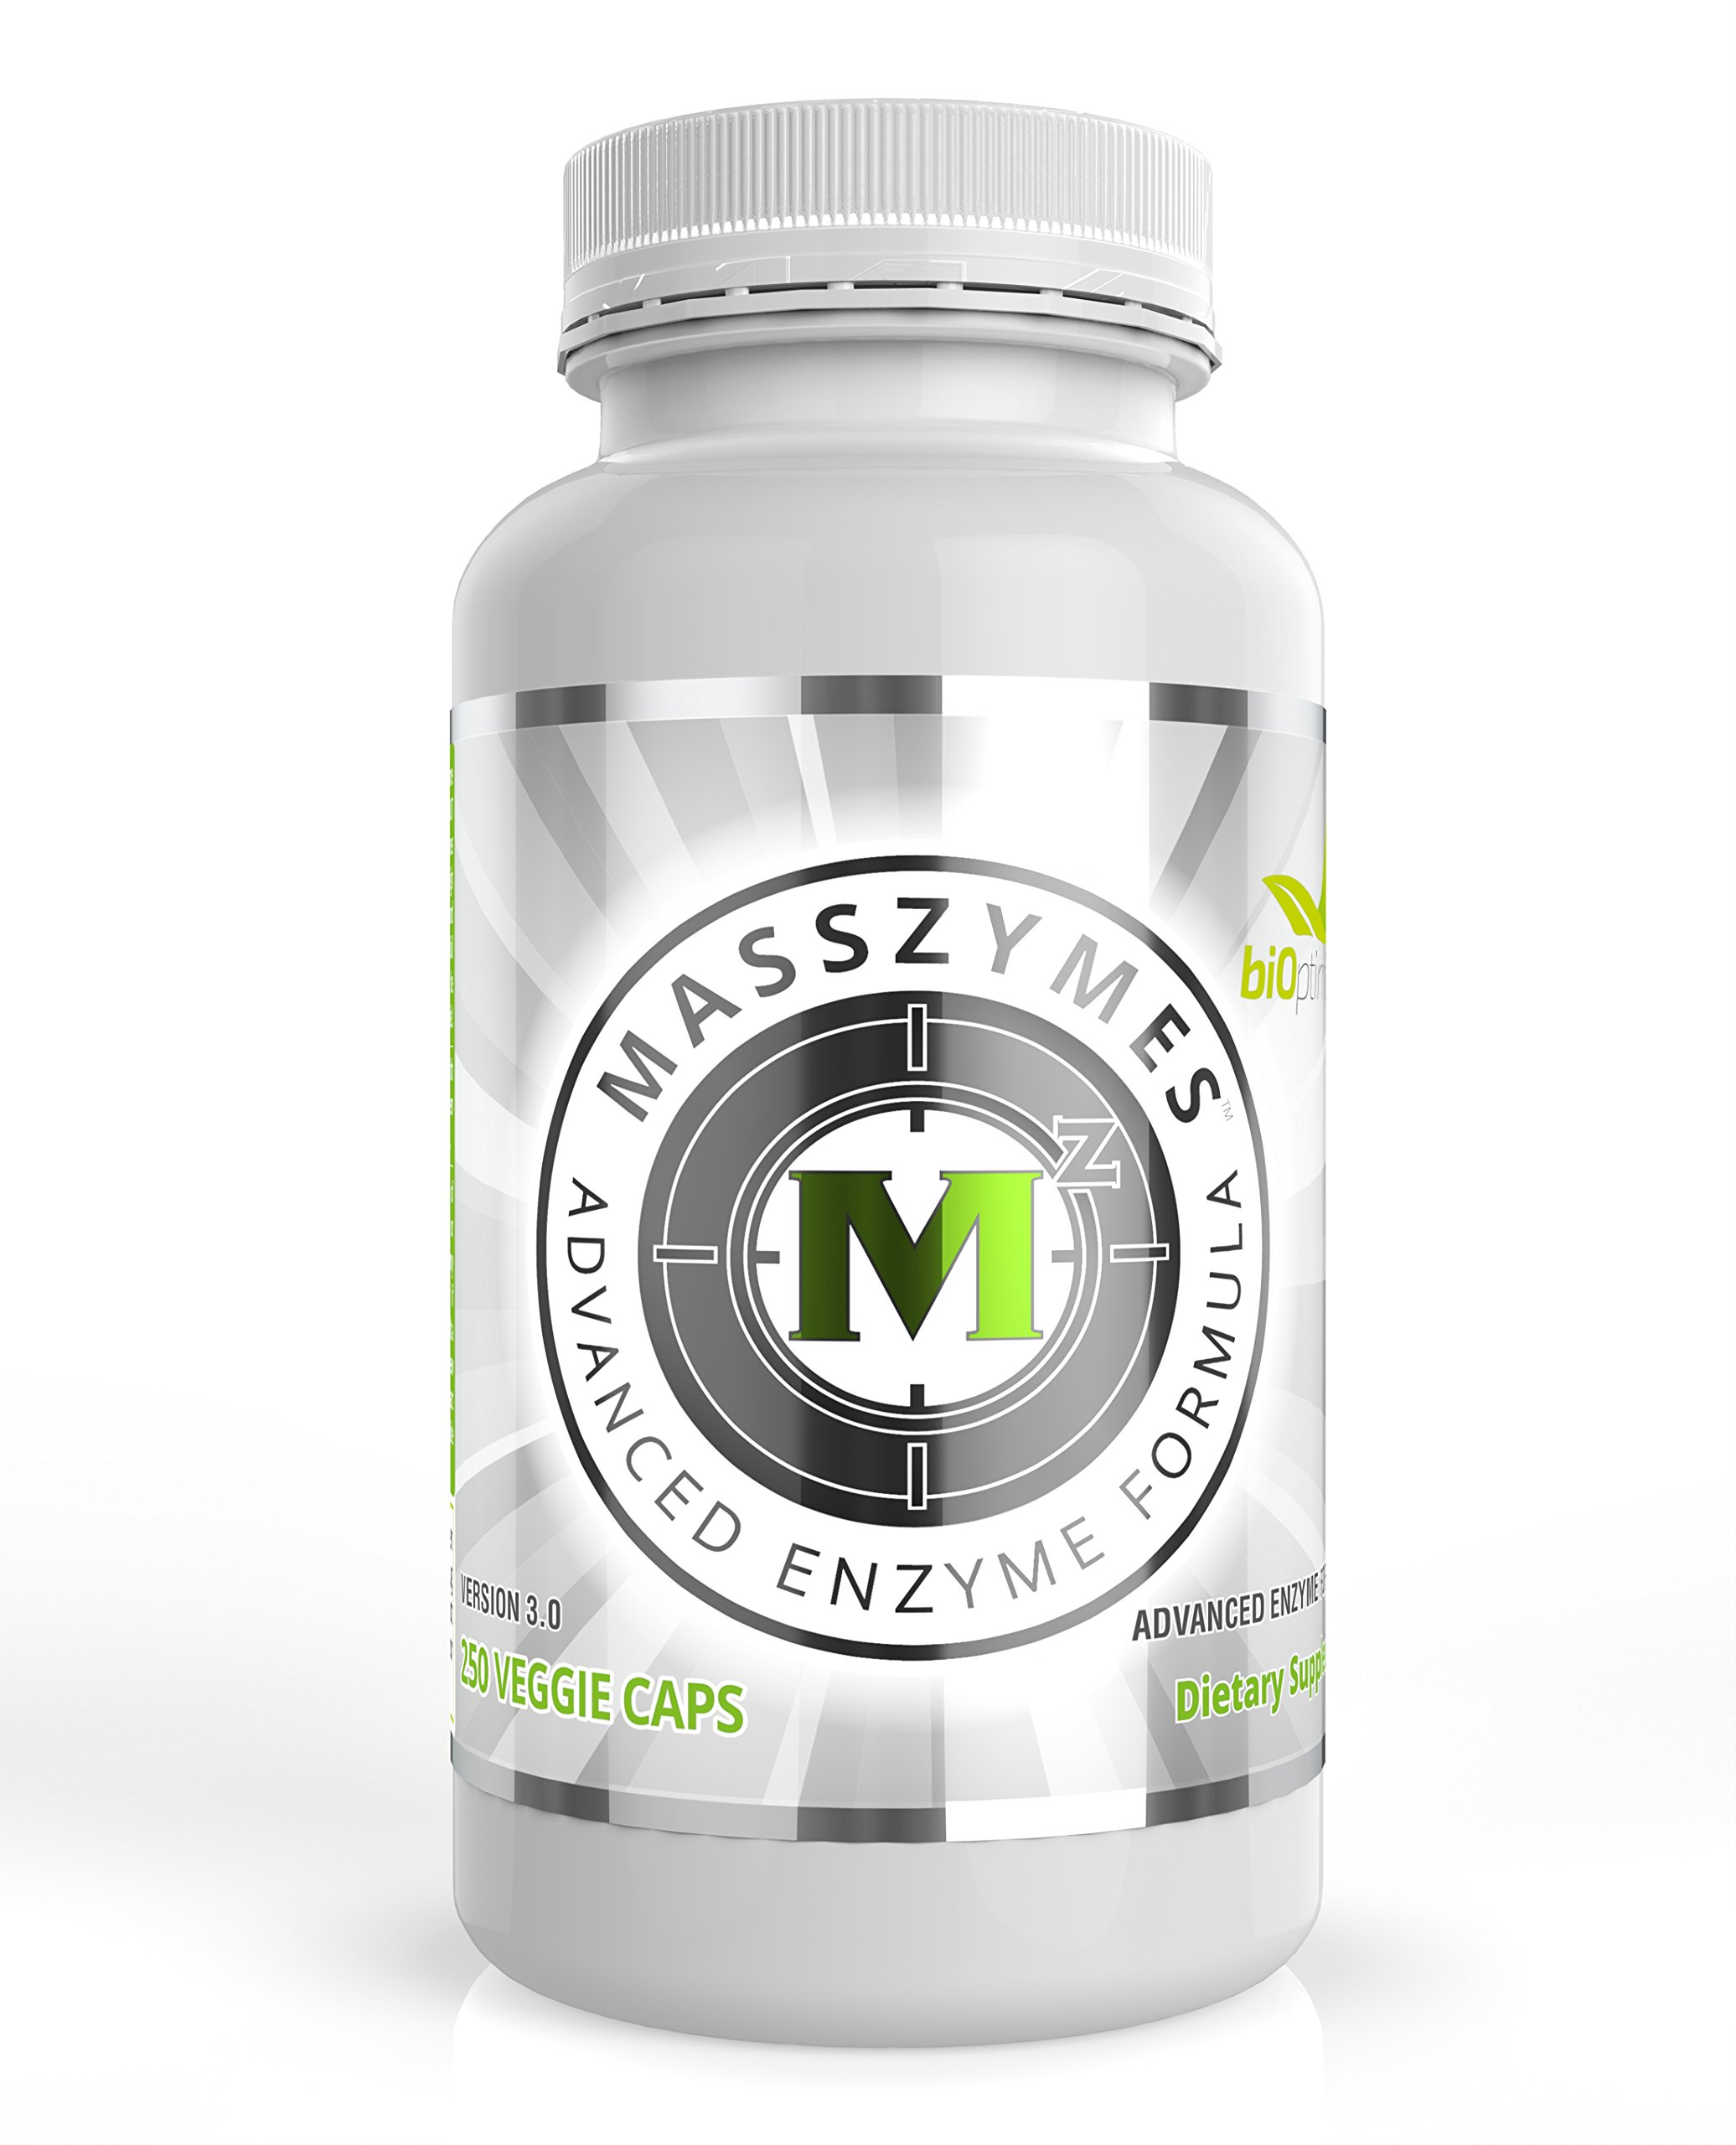 MassZymes - Premium Digestive Enzyme Supplement for Women and Men - Most Potent Enzyme Formula on The Planet - Now with AstraZyme (120 Capsules) by BiOptimizers